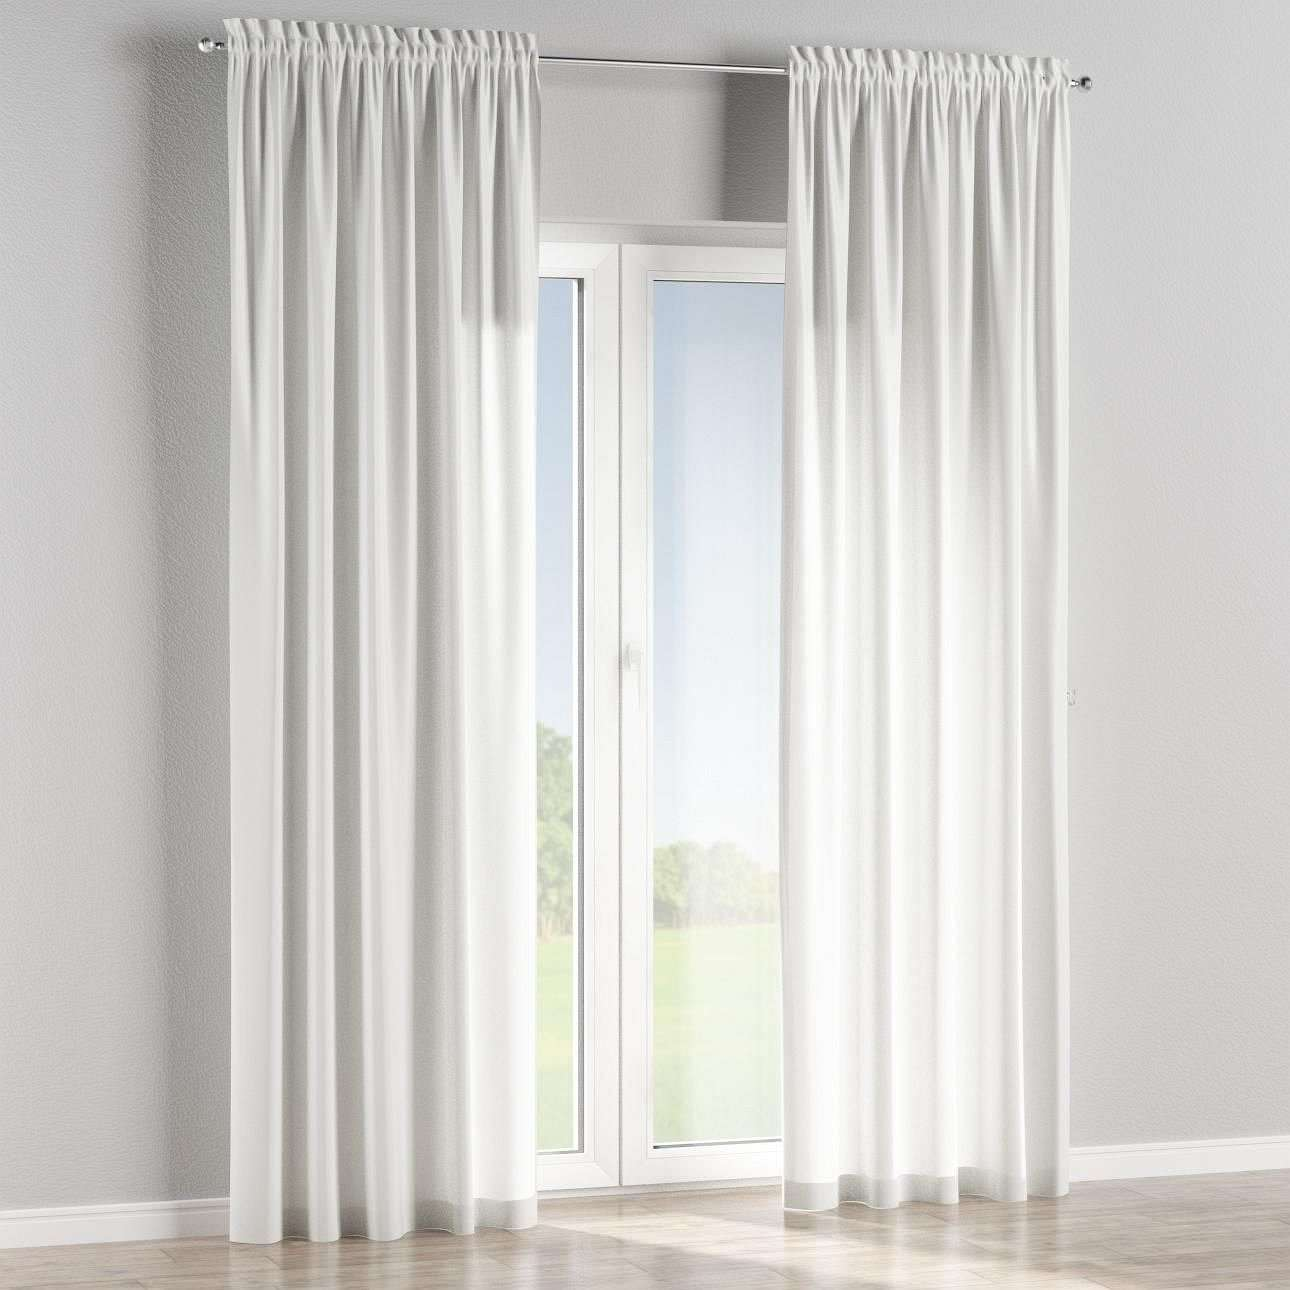 Slot and frill lined curtains in collection Marina, fabric: 140-62